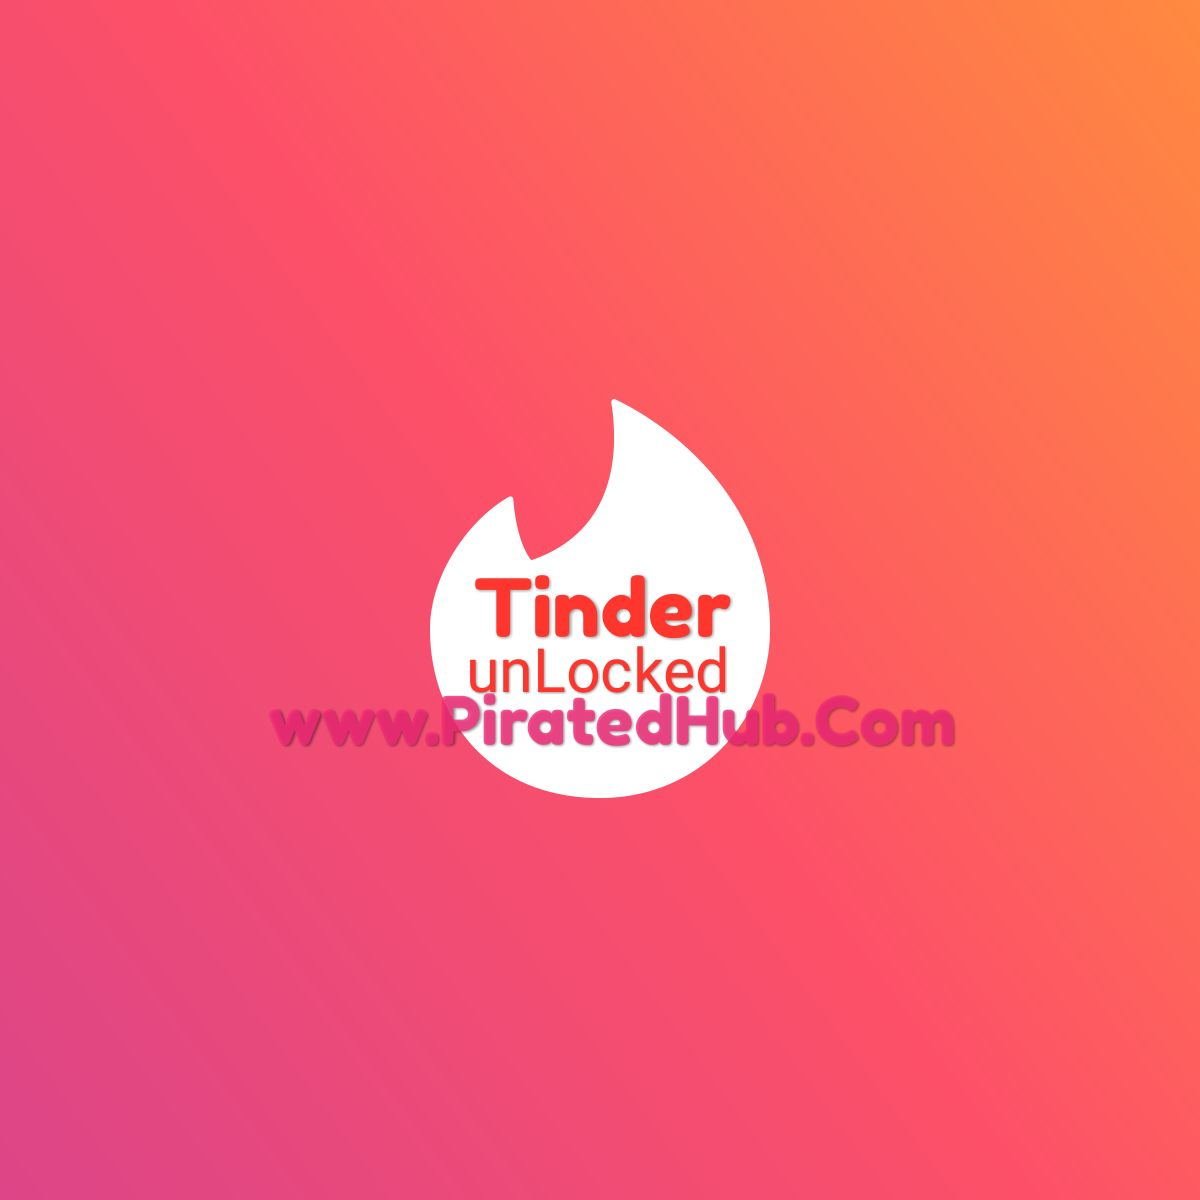 Tinder patch cracked plus [PSA] You